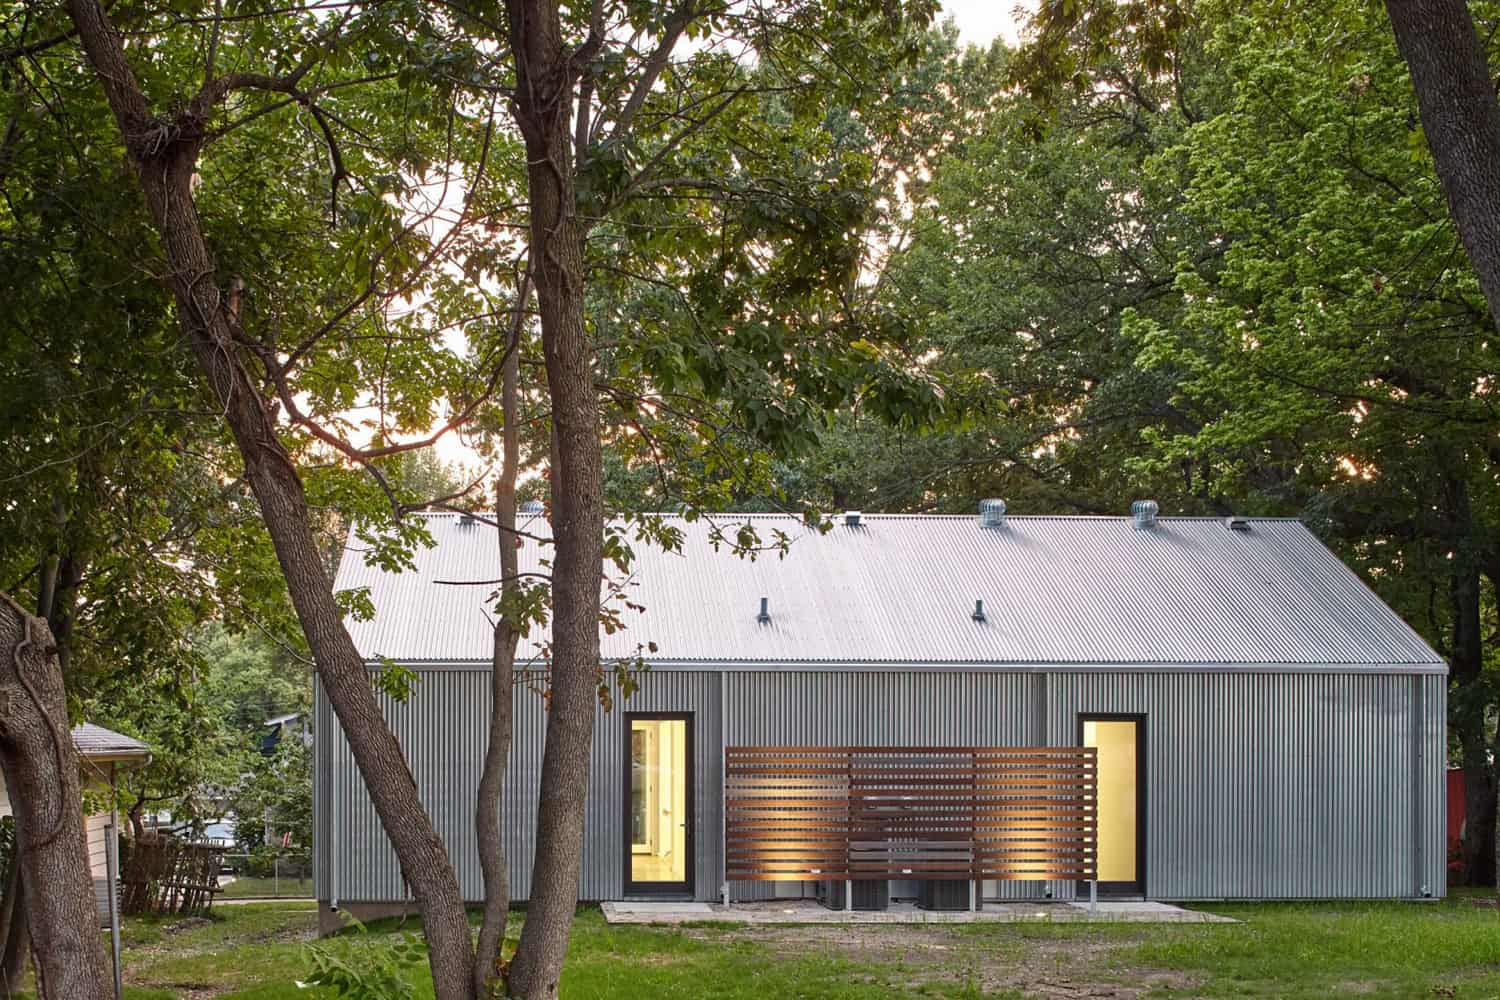 Corrugated Metal Houses Designed By Architecture Students